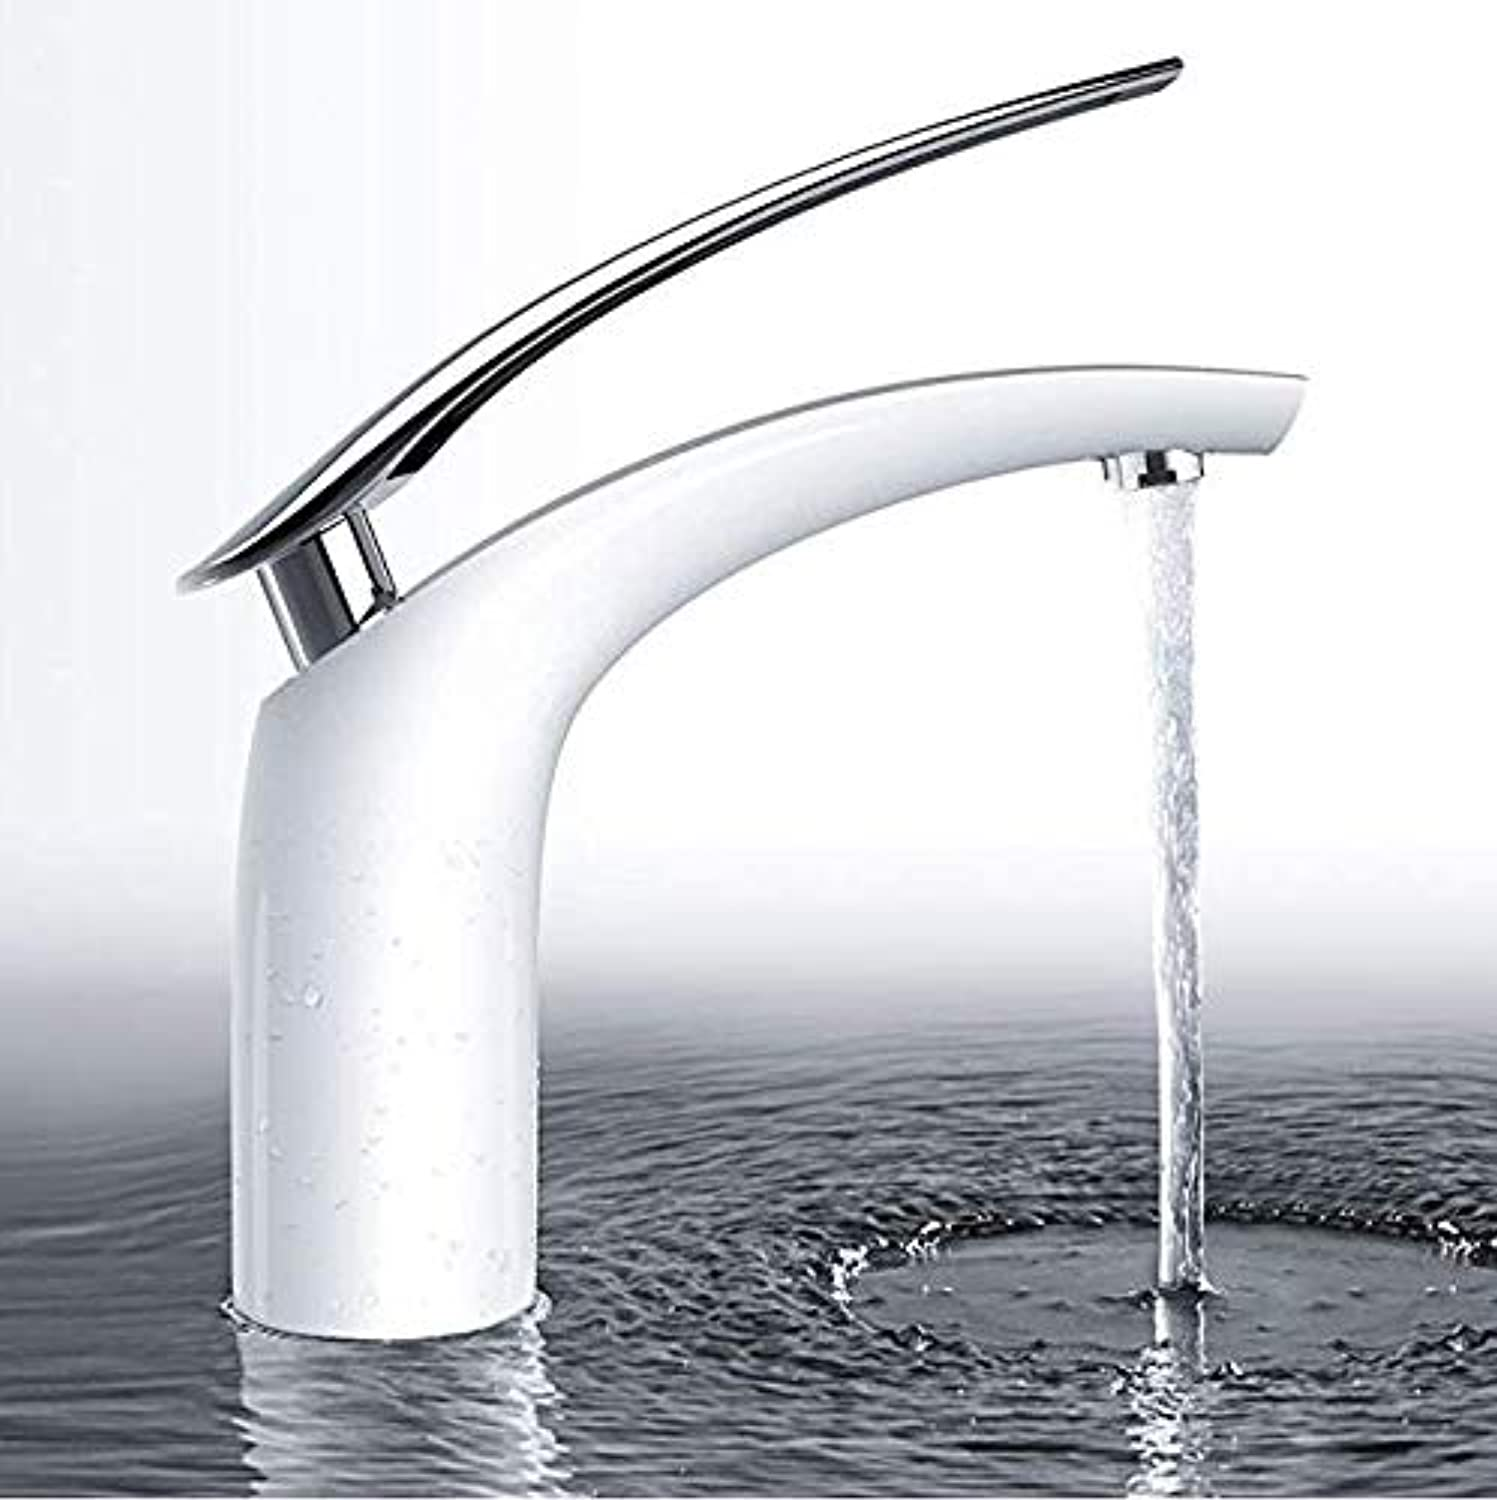 Bathroom Taps Basin Mixer Taps Bathroom Faucet Sink Tapsbasin Mixer Tap,Modern Single Lever Bathroom Sink Hot Cold Taps with Brass Faucet Body